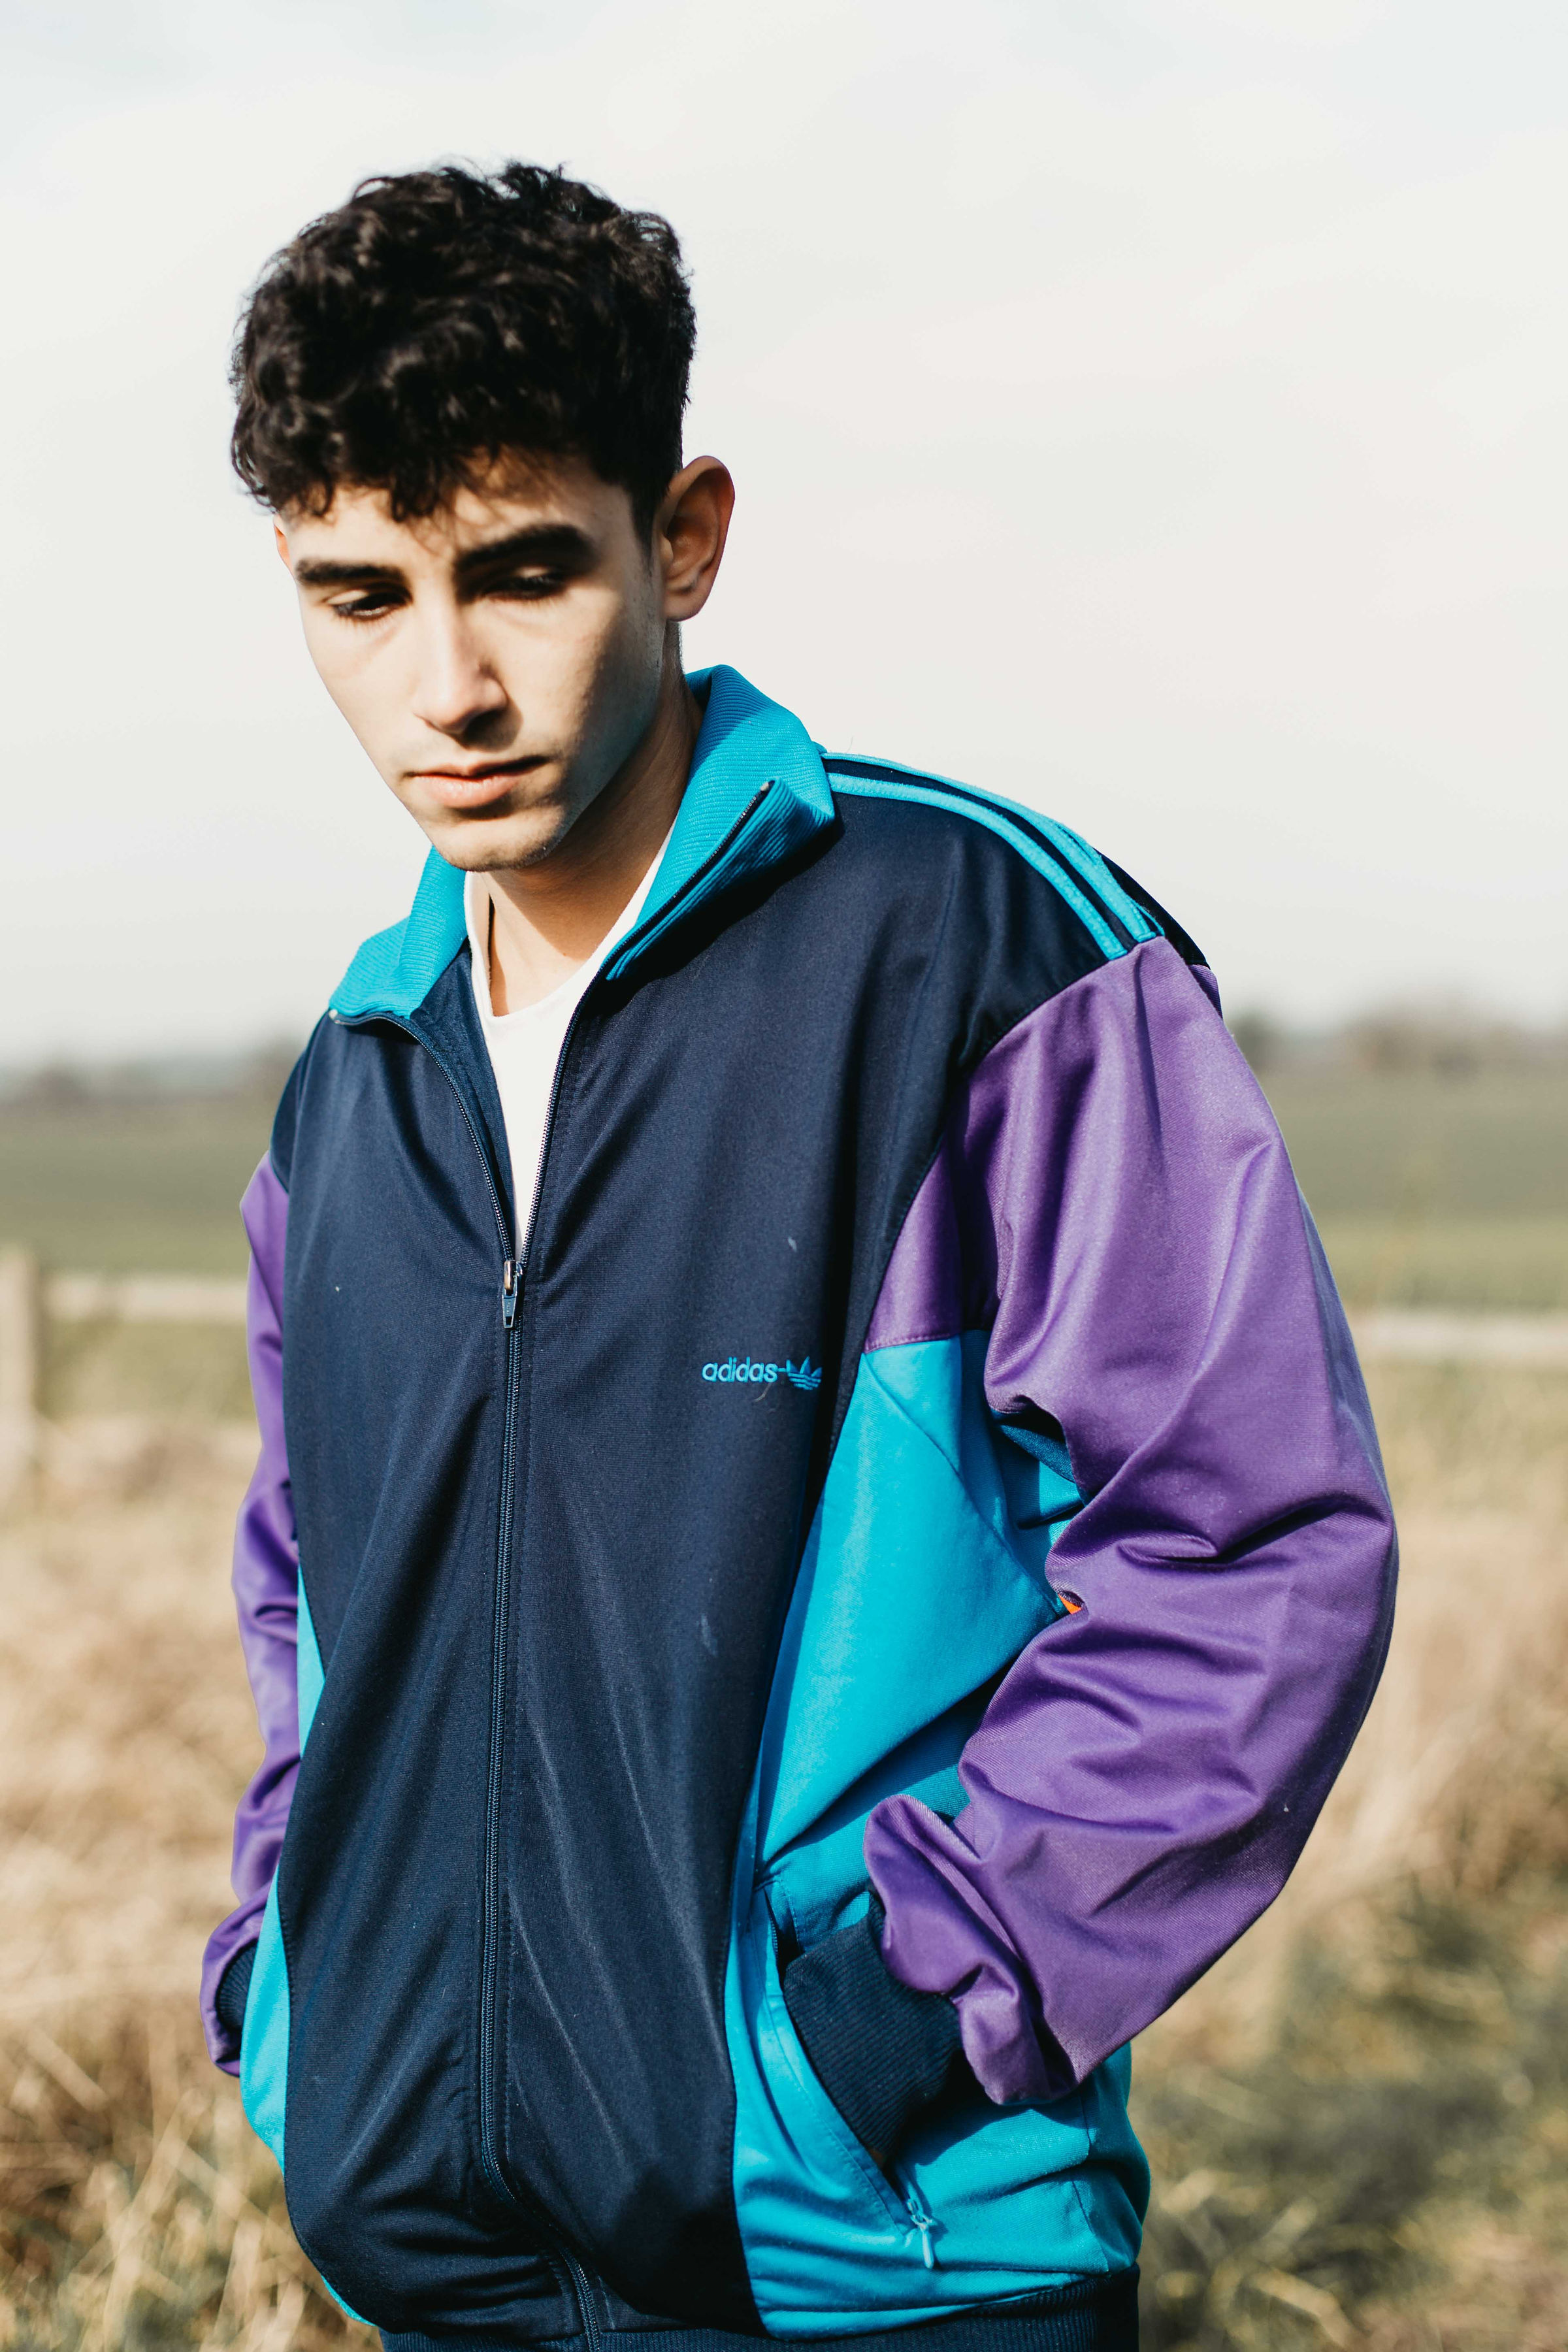 f4a13814b286 Blue Purple Adidas Originals 90s Tracksuit Top Jacket — Headlock Vintage